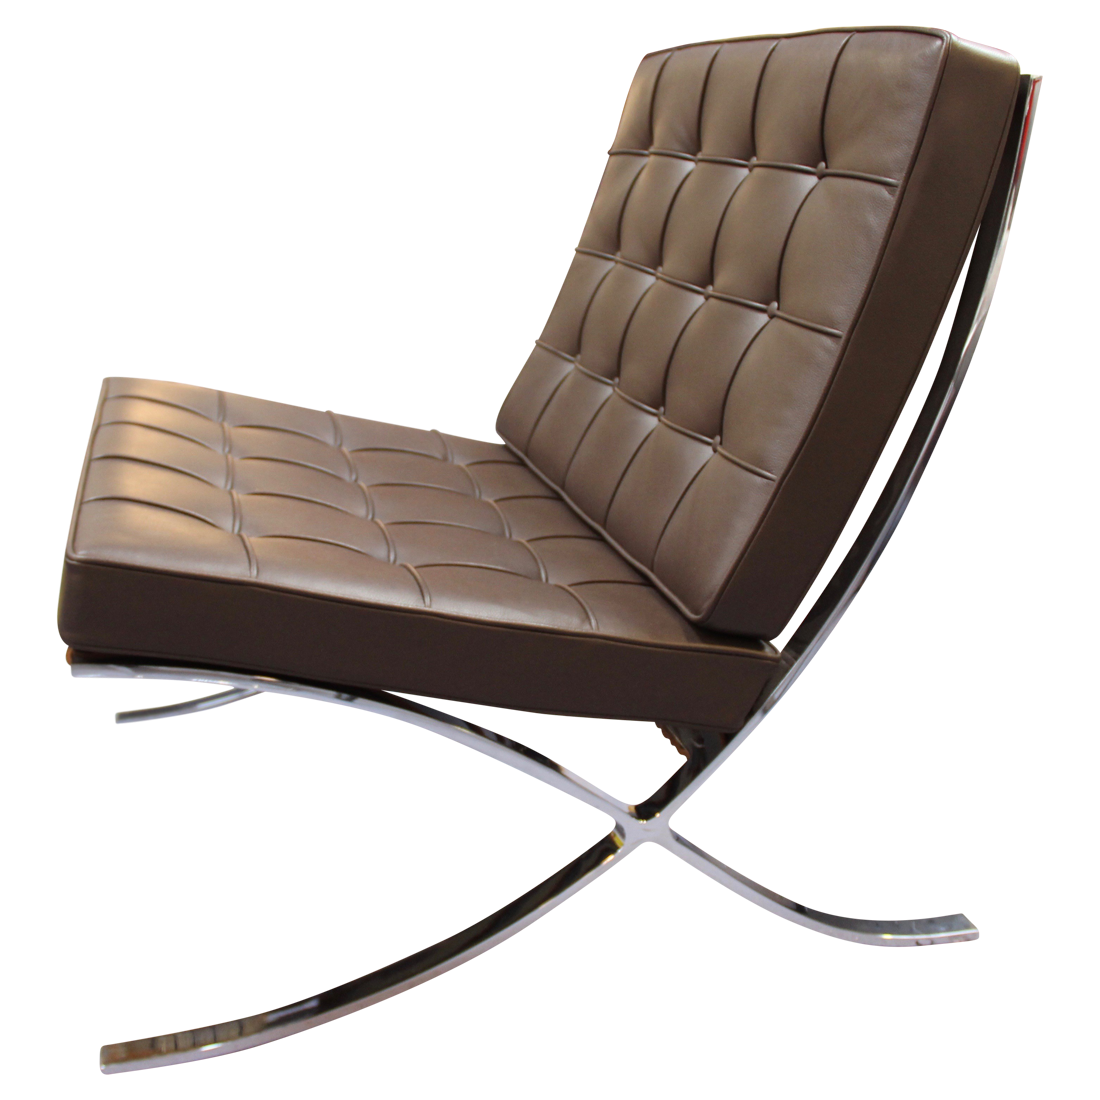 fauteuil barcelona cuir chocolat par ludwig mies van der rohe pour knoll chaises fauteuils. Black Bedroom Furniture Sets. Home Design Ideas